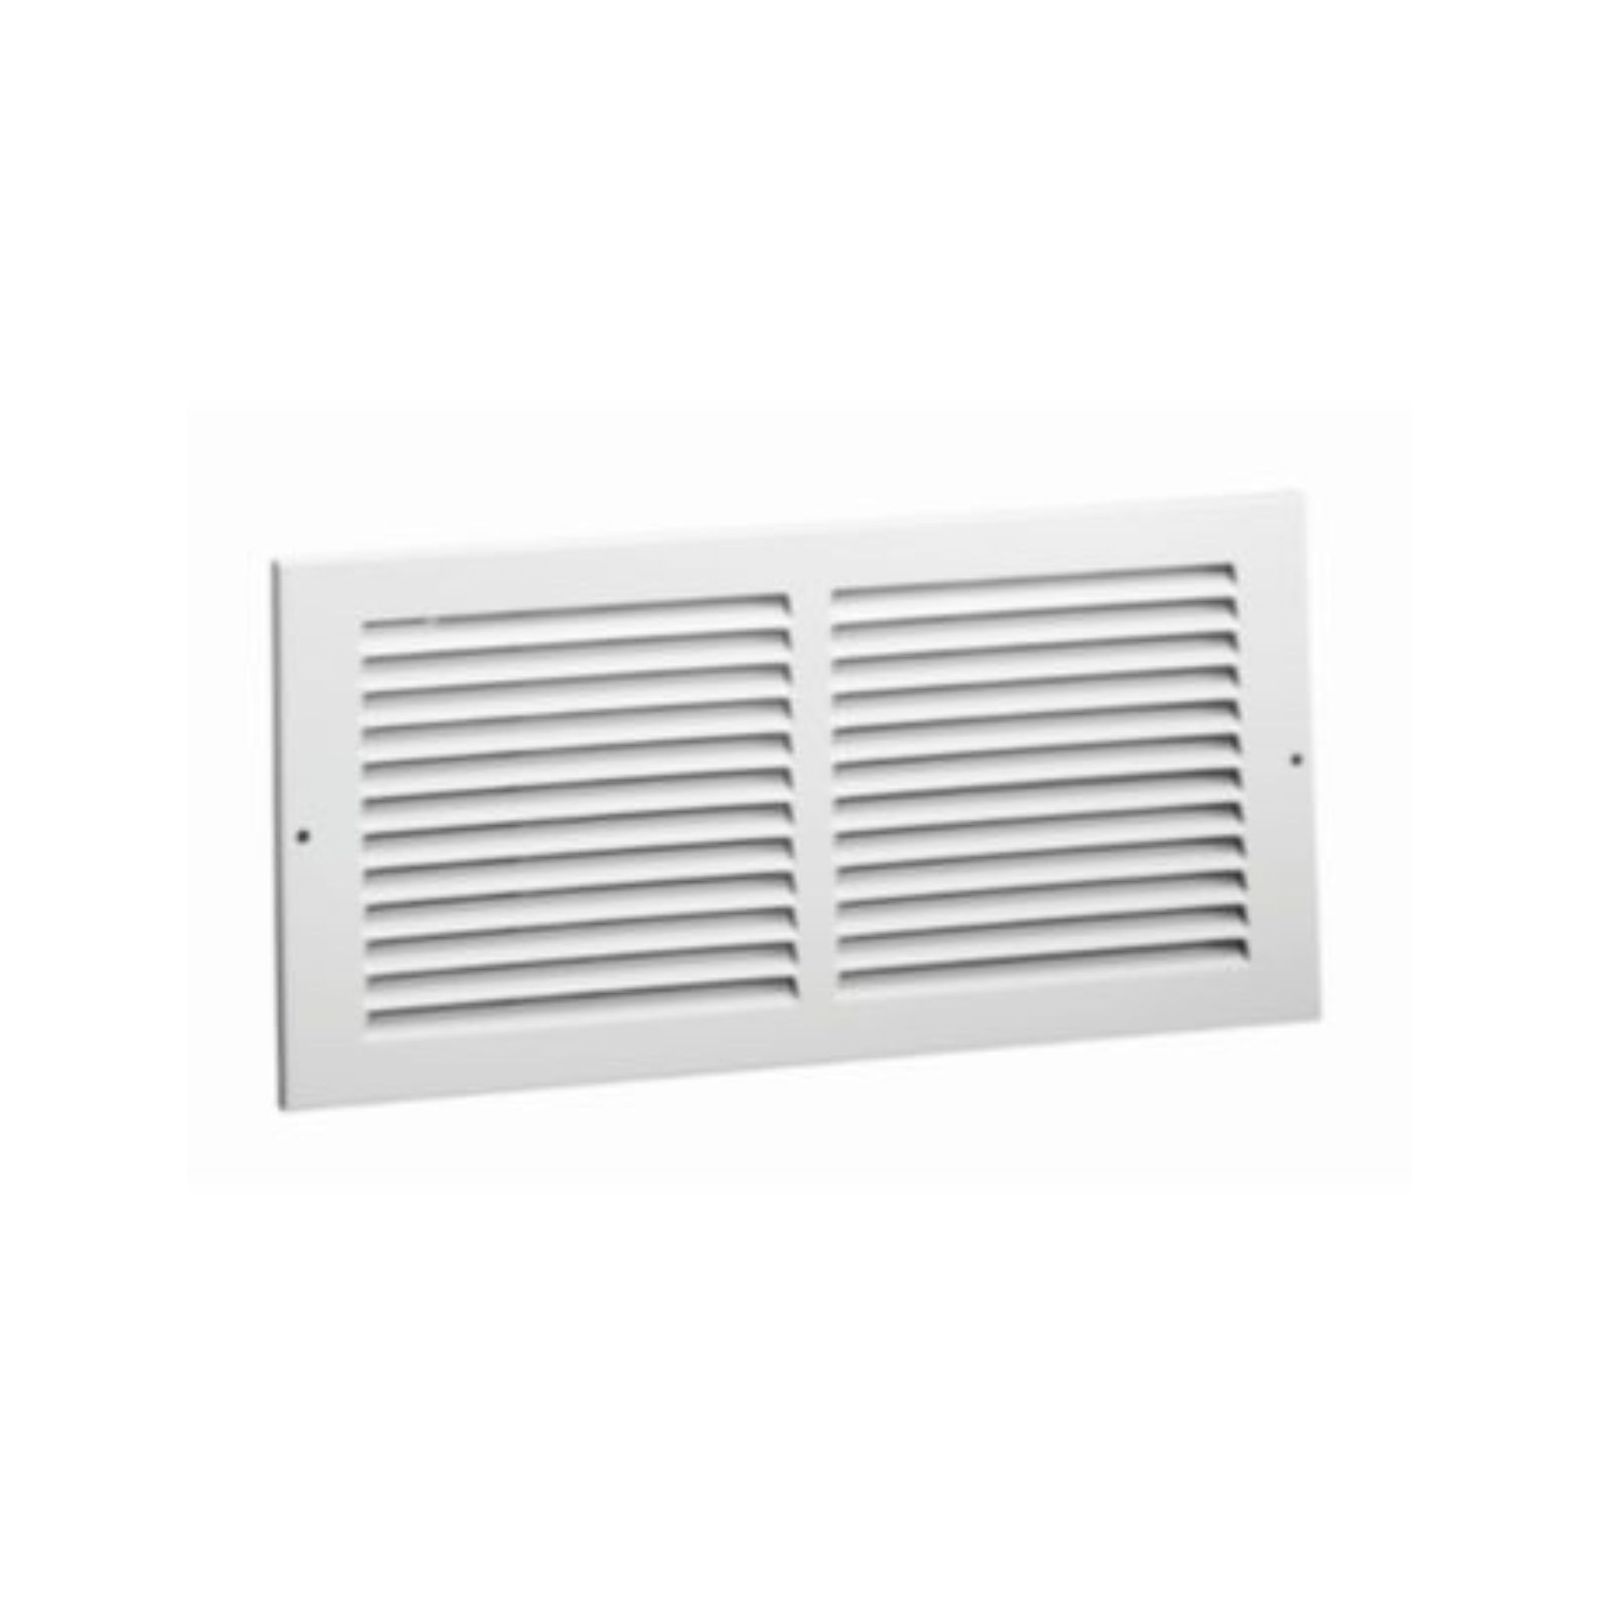 "RAG1425 - Stamped Face Return Grille, White Finish, 16"" X 6"""